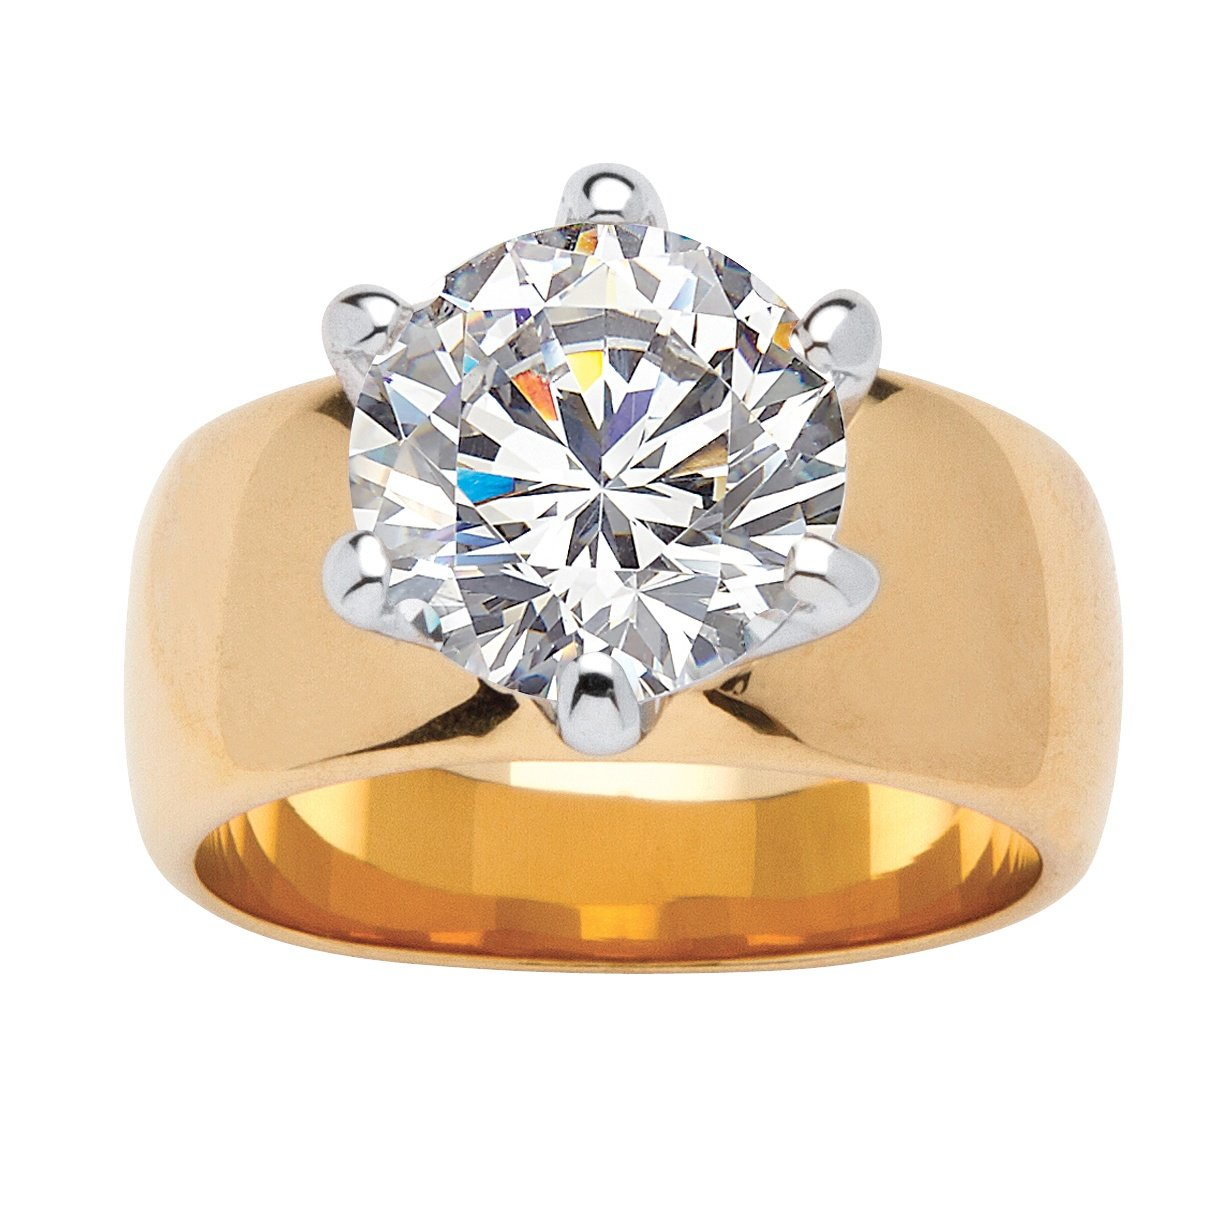 Palm Beach Jewelry Round White Cubic Zirconia 14k Gold-Plated Solitaire Engagement Anniversary Ring Size 5